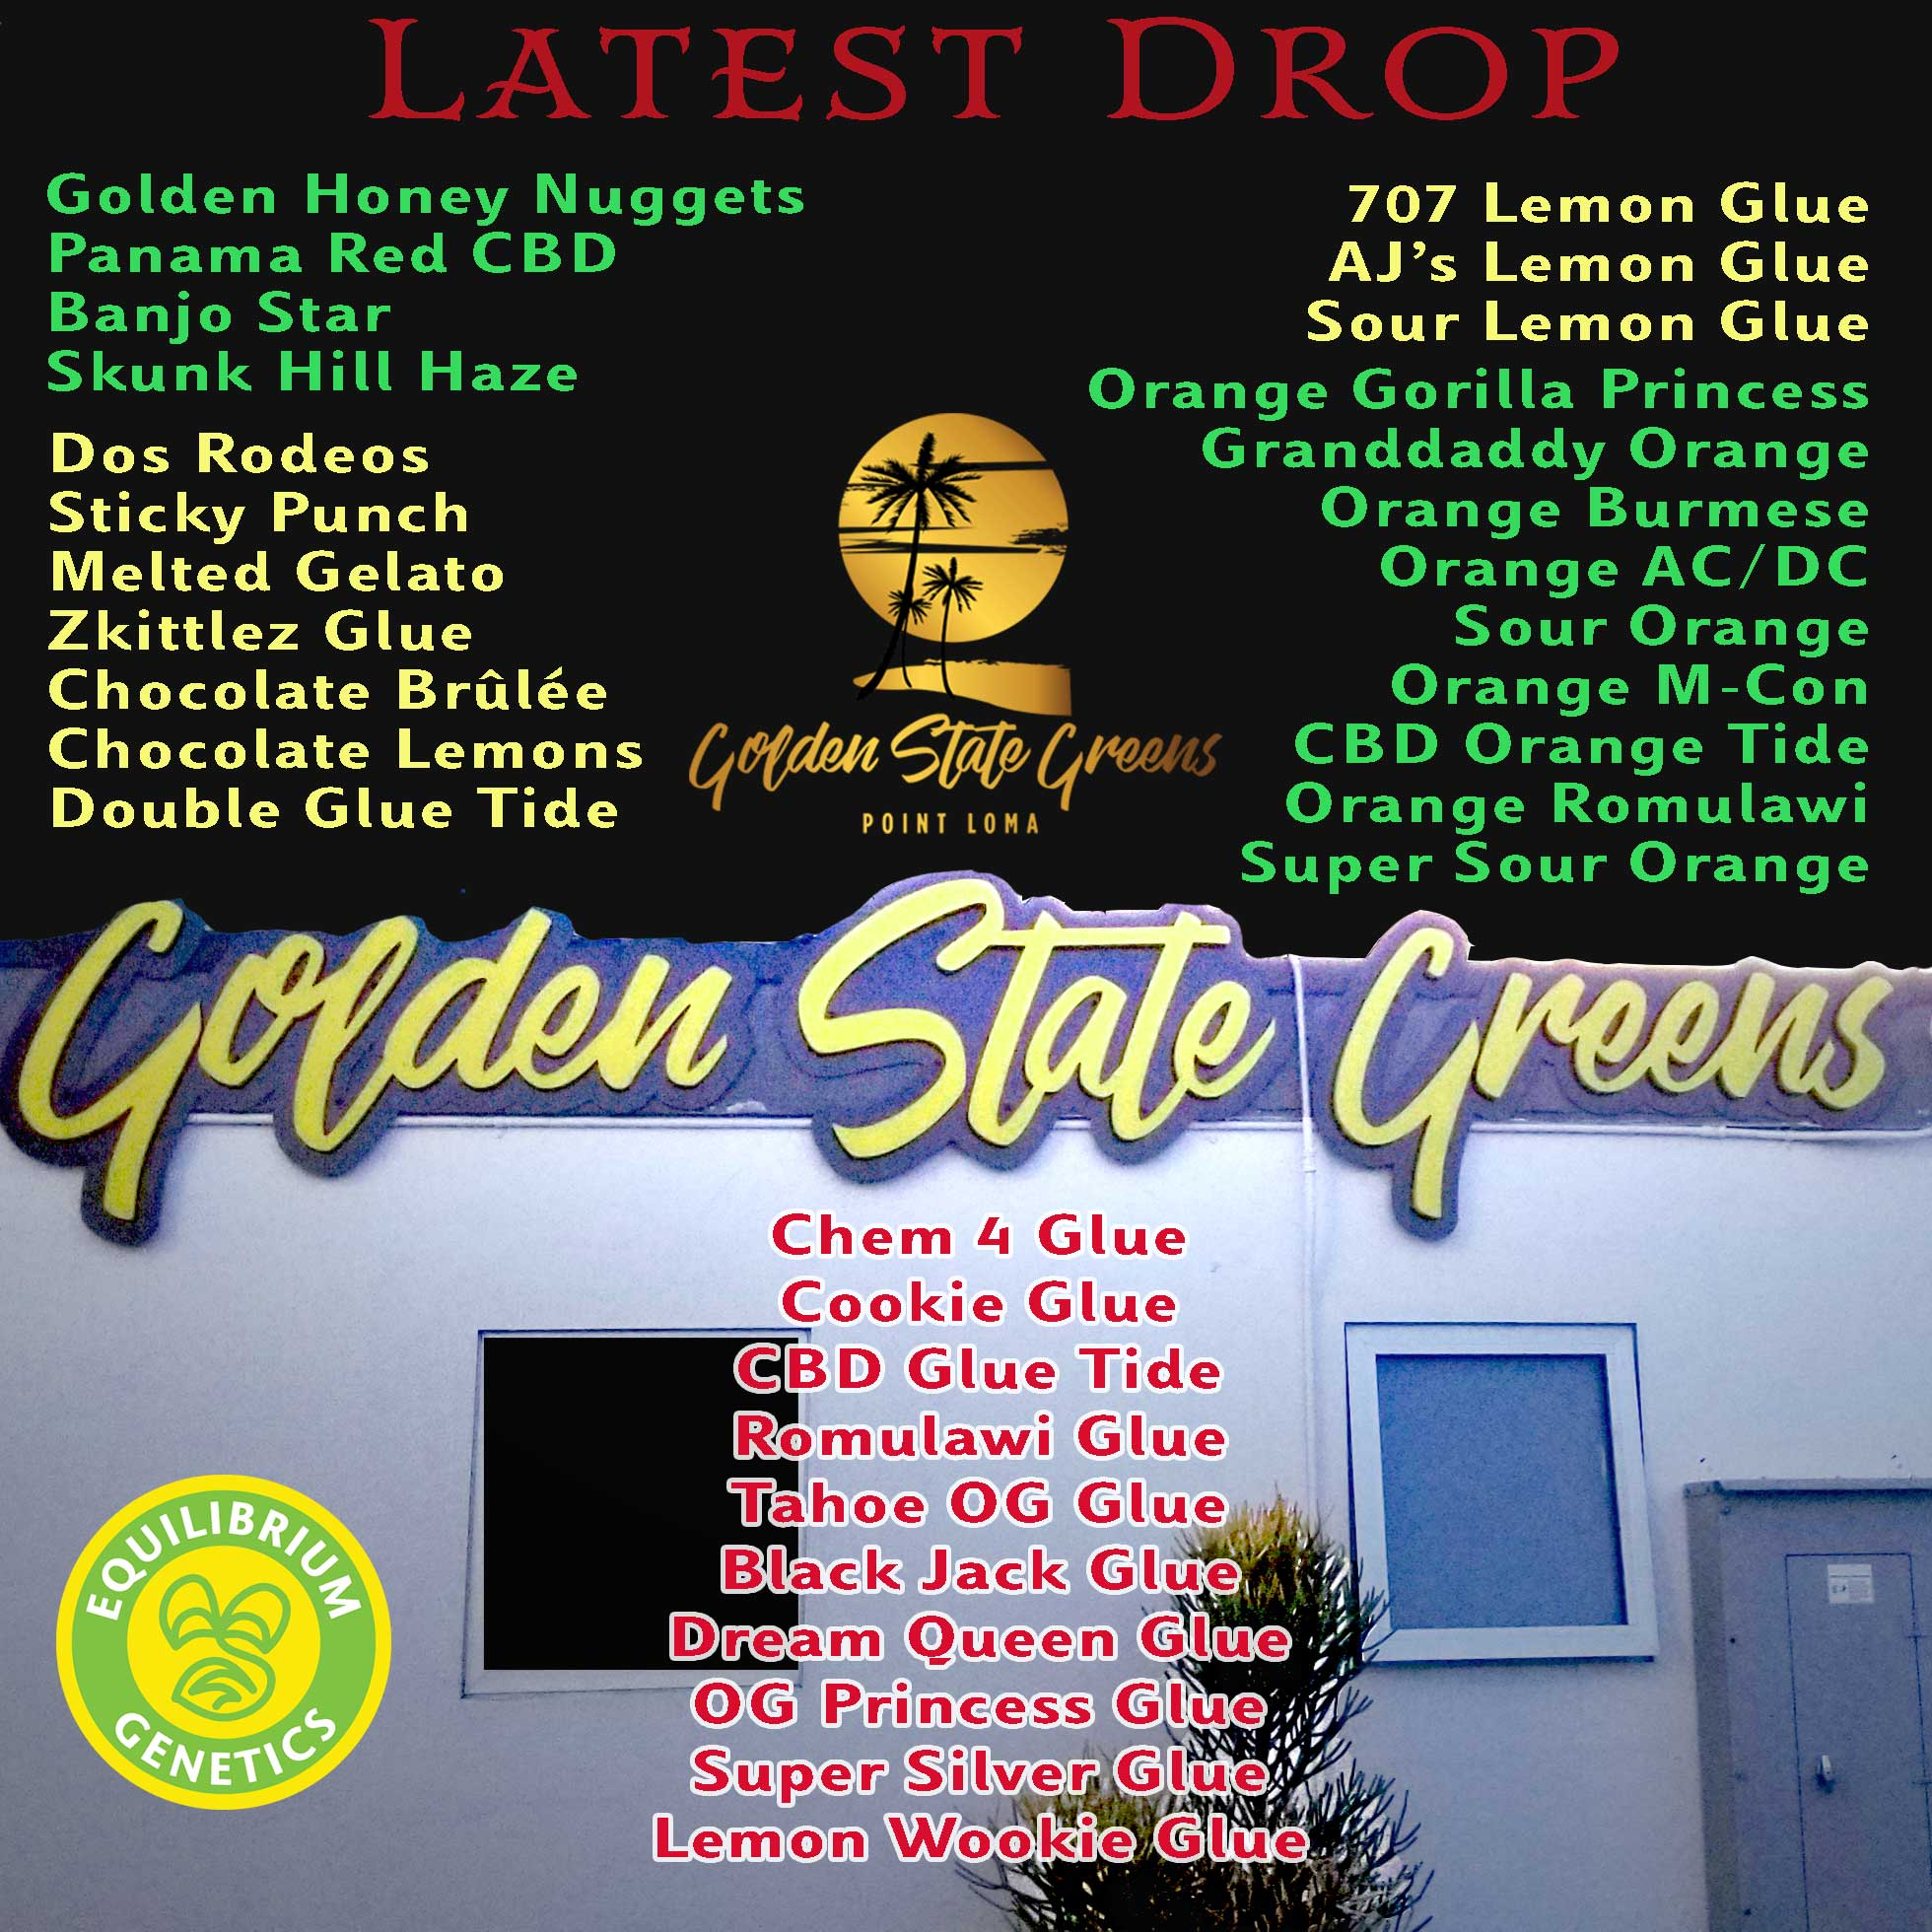 Latest Drop: Golden State Greens